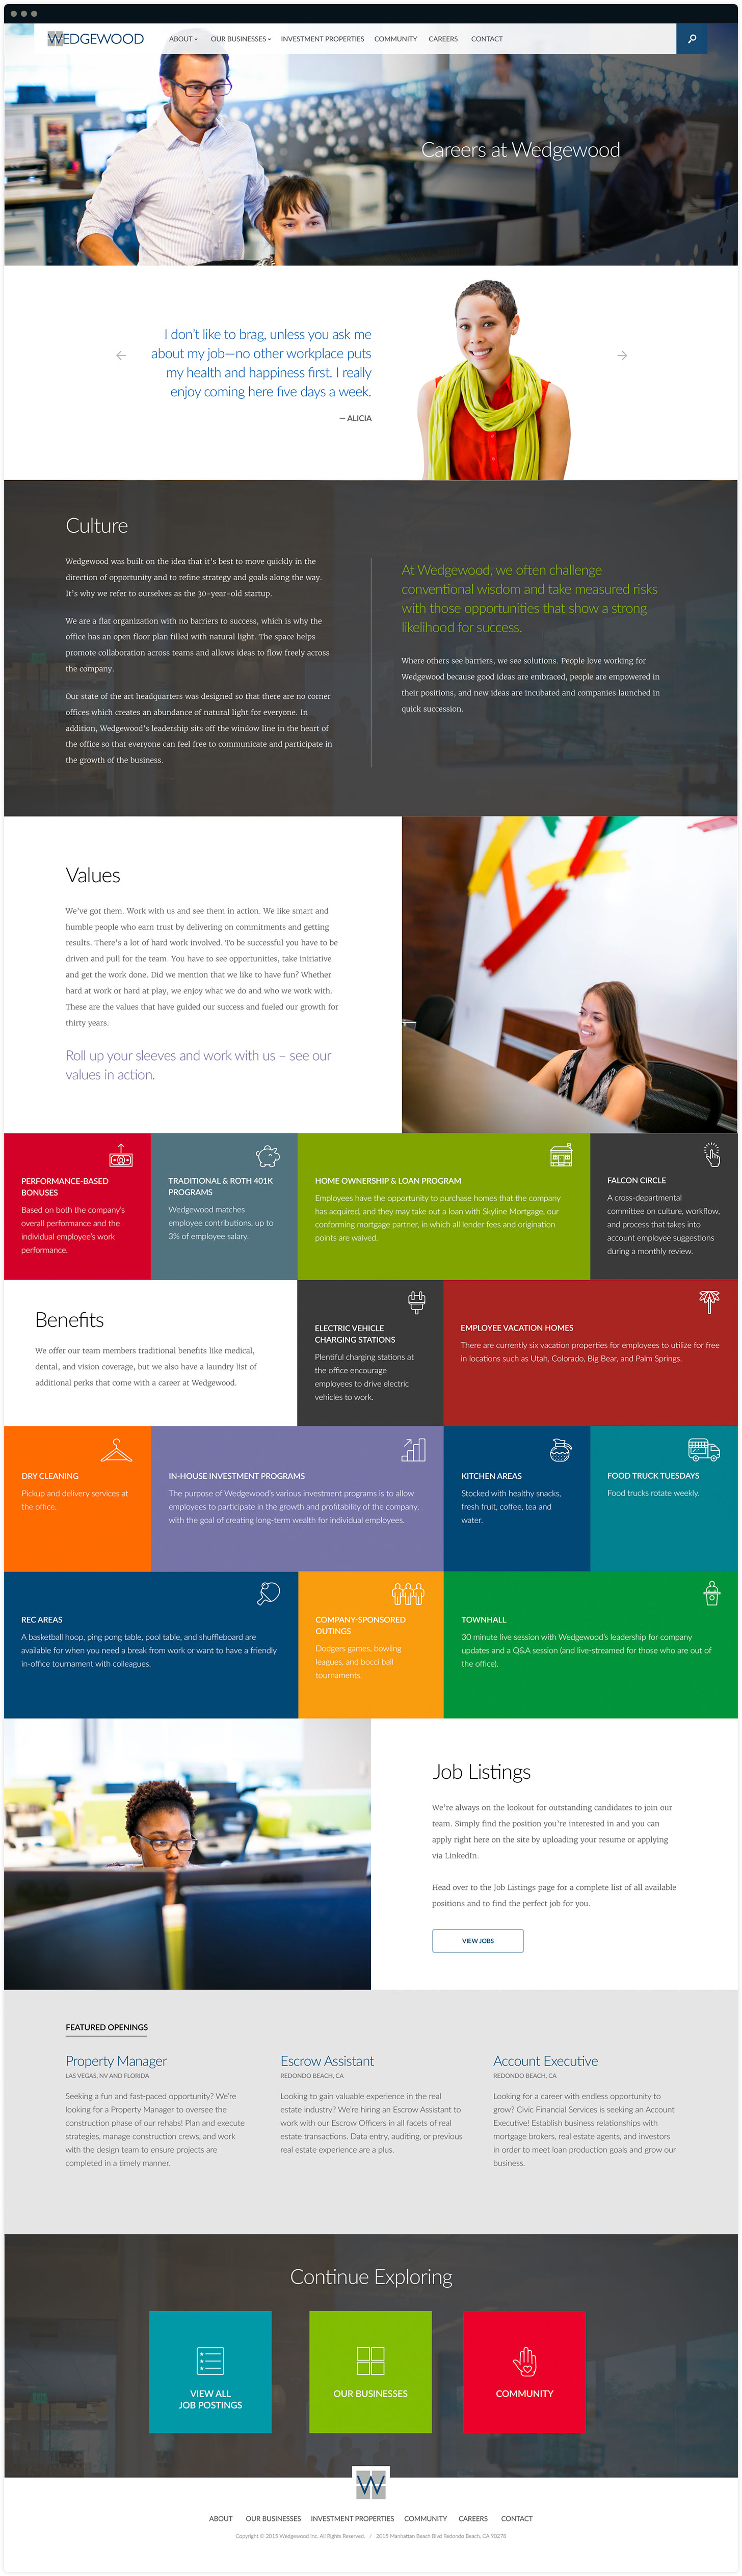 Wedgewood Careers Page Design by Salted Stone